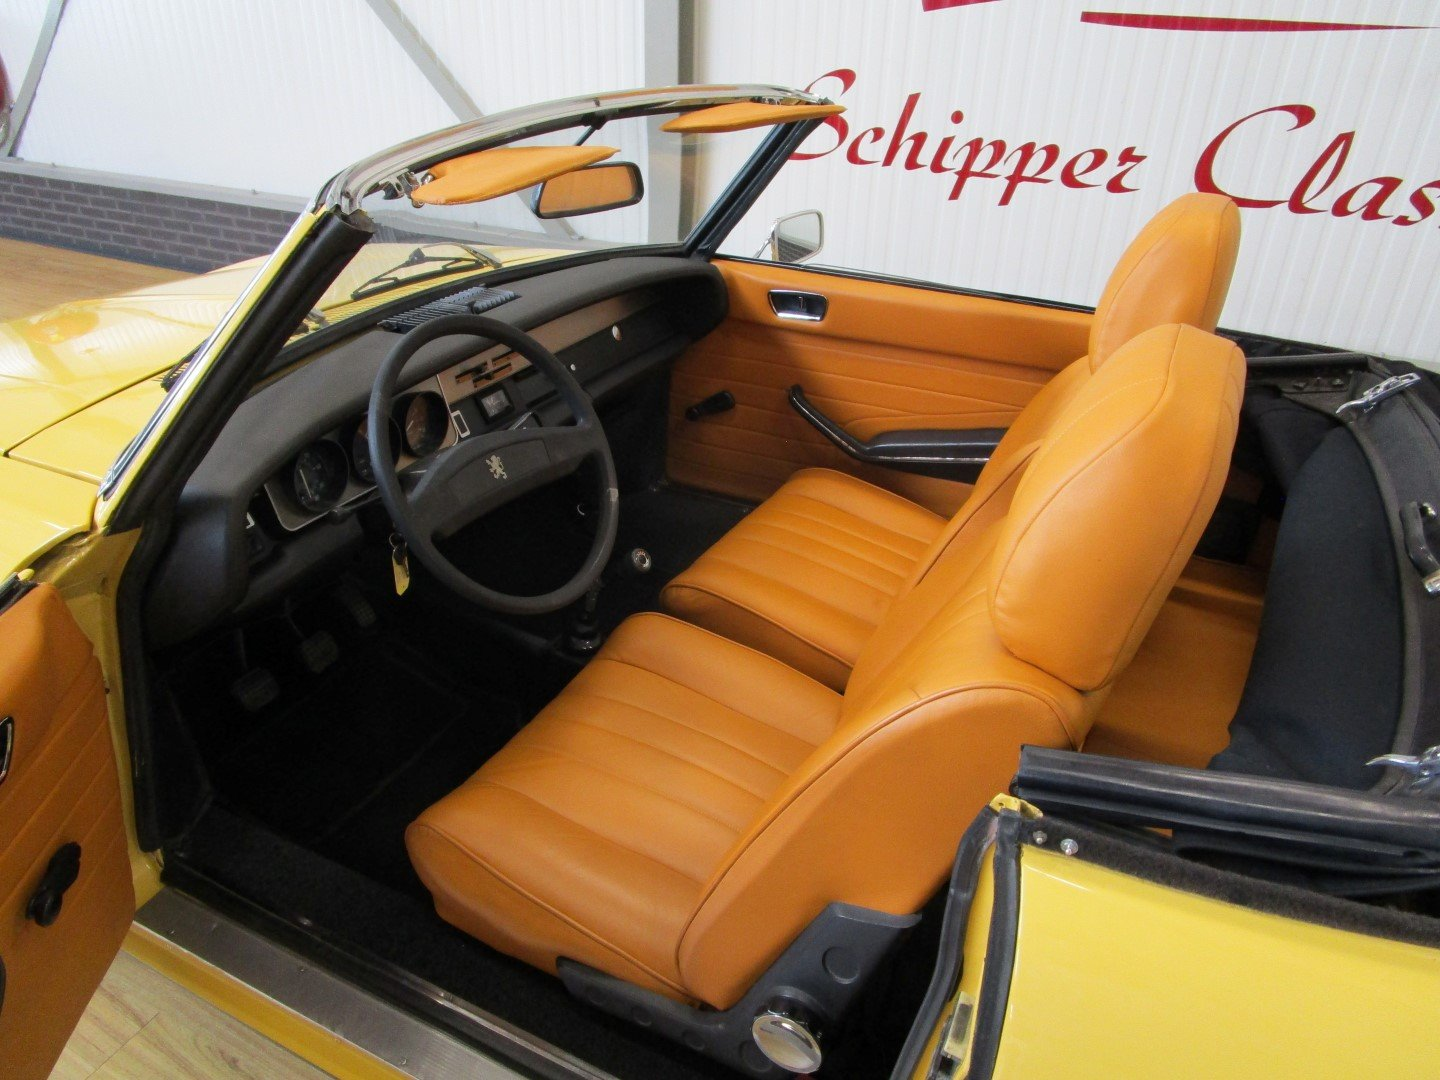 1972 Peugeot 304 S Cabrio For Sale (picture 5 of 6)